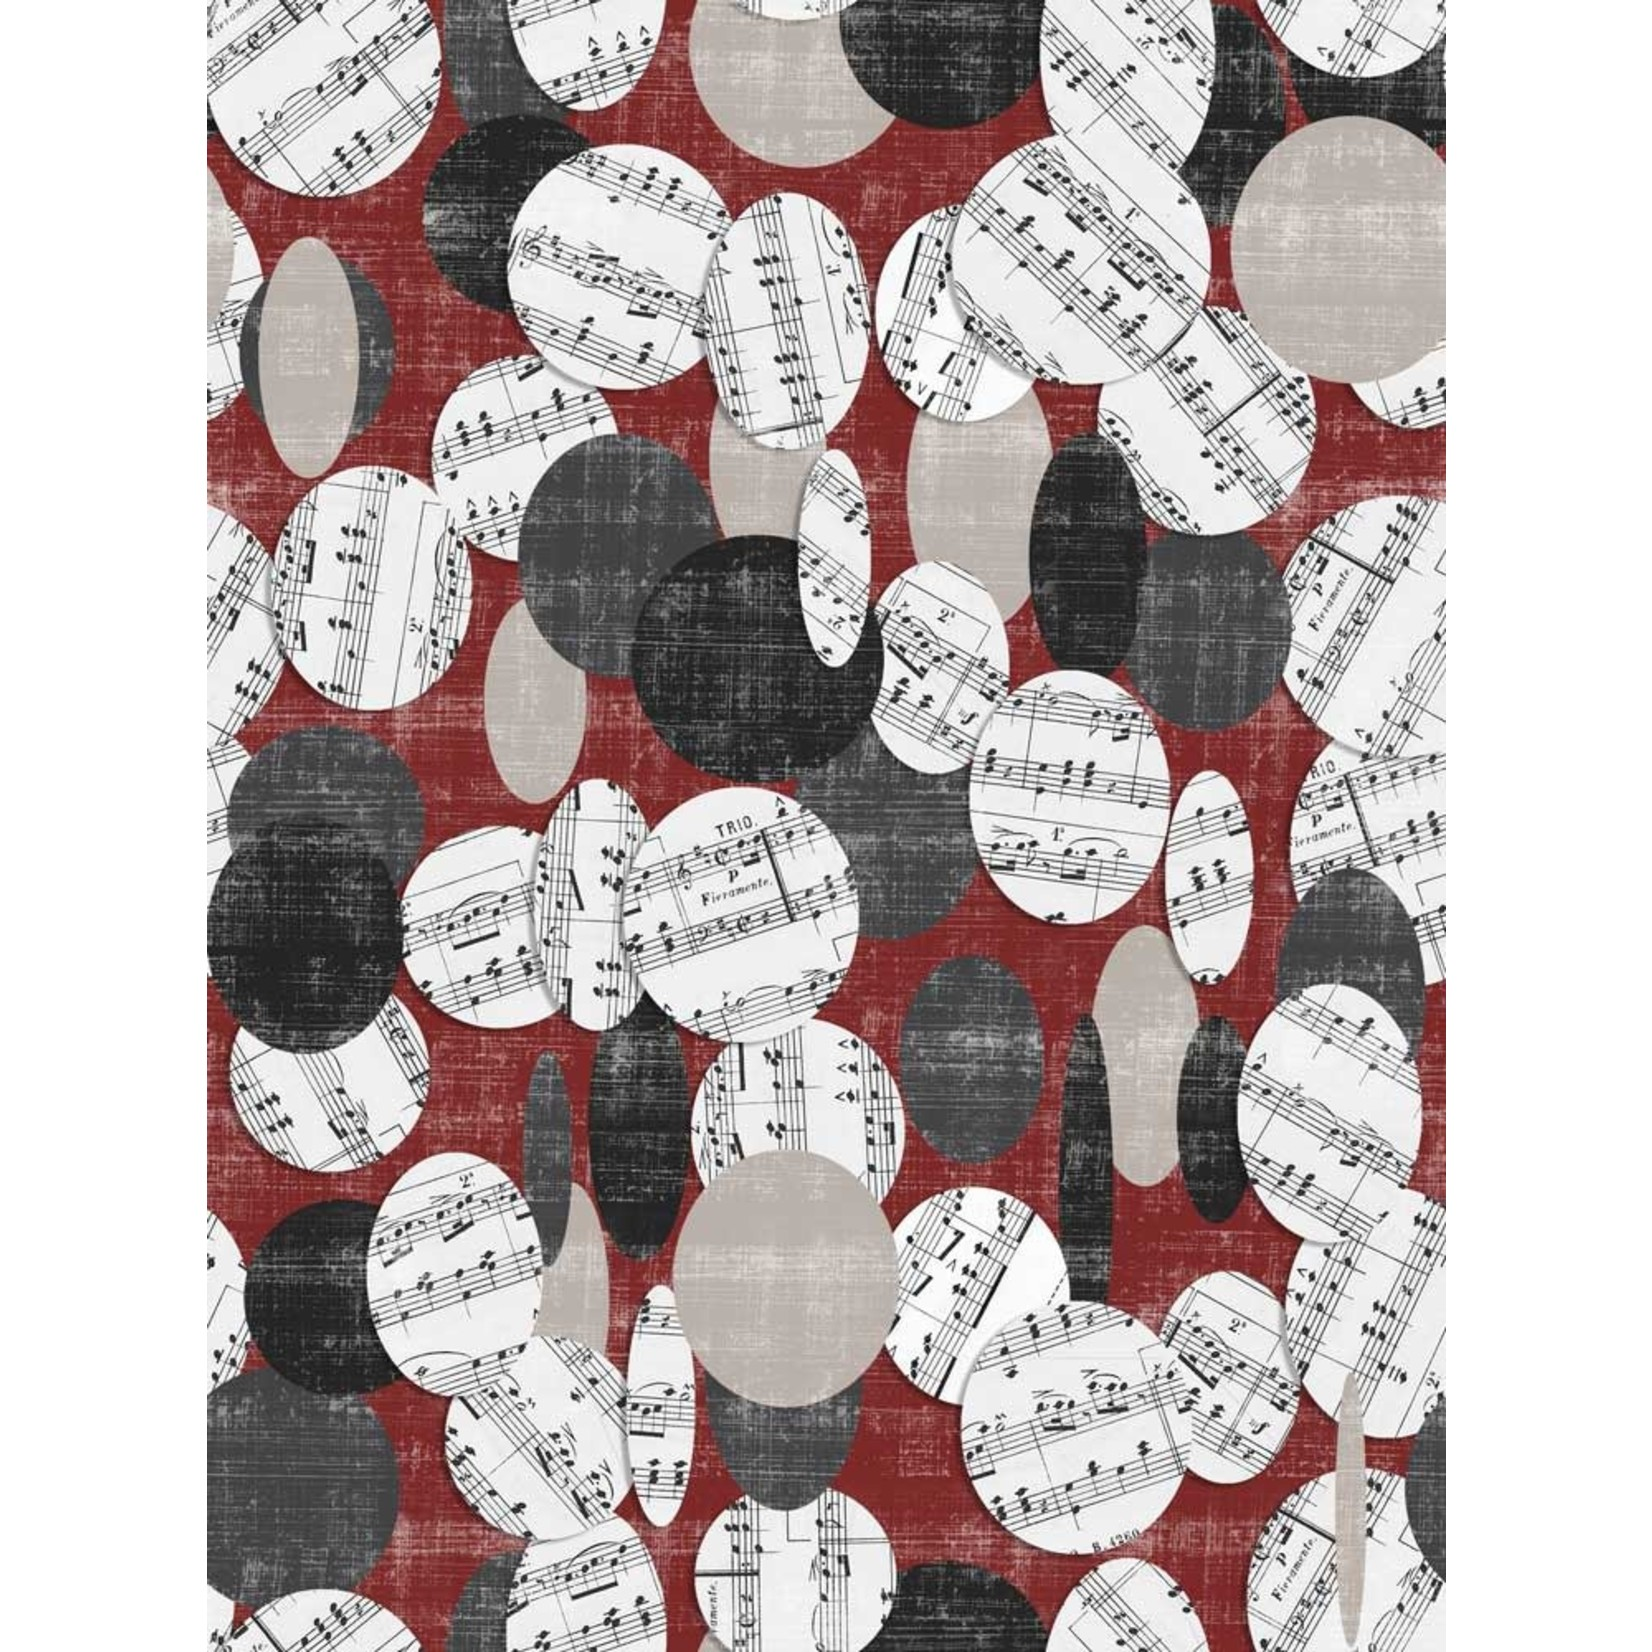 Blank Quilting Let The Music Play - Circles With Notes